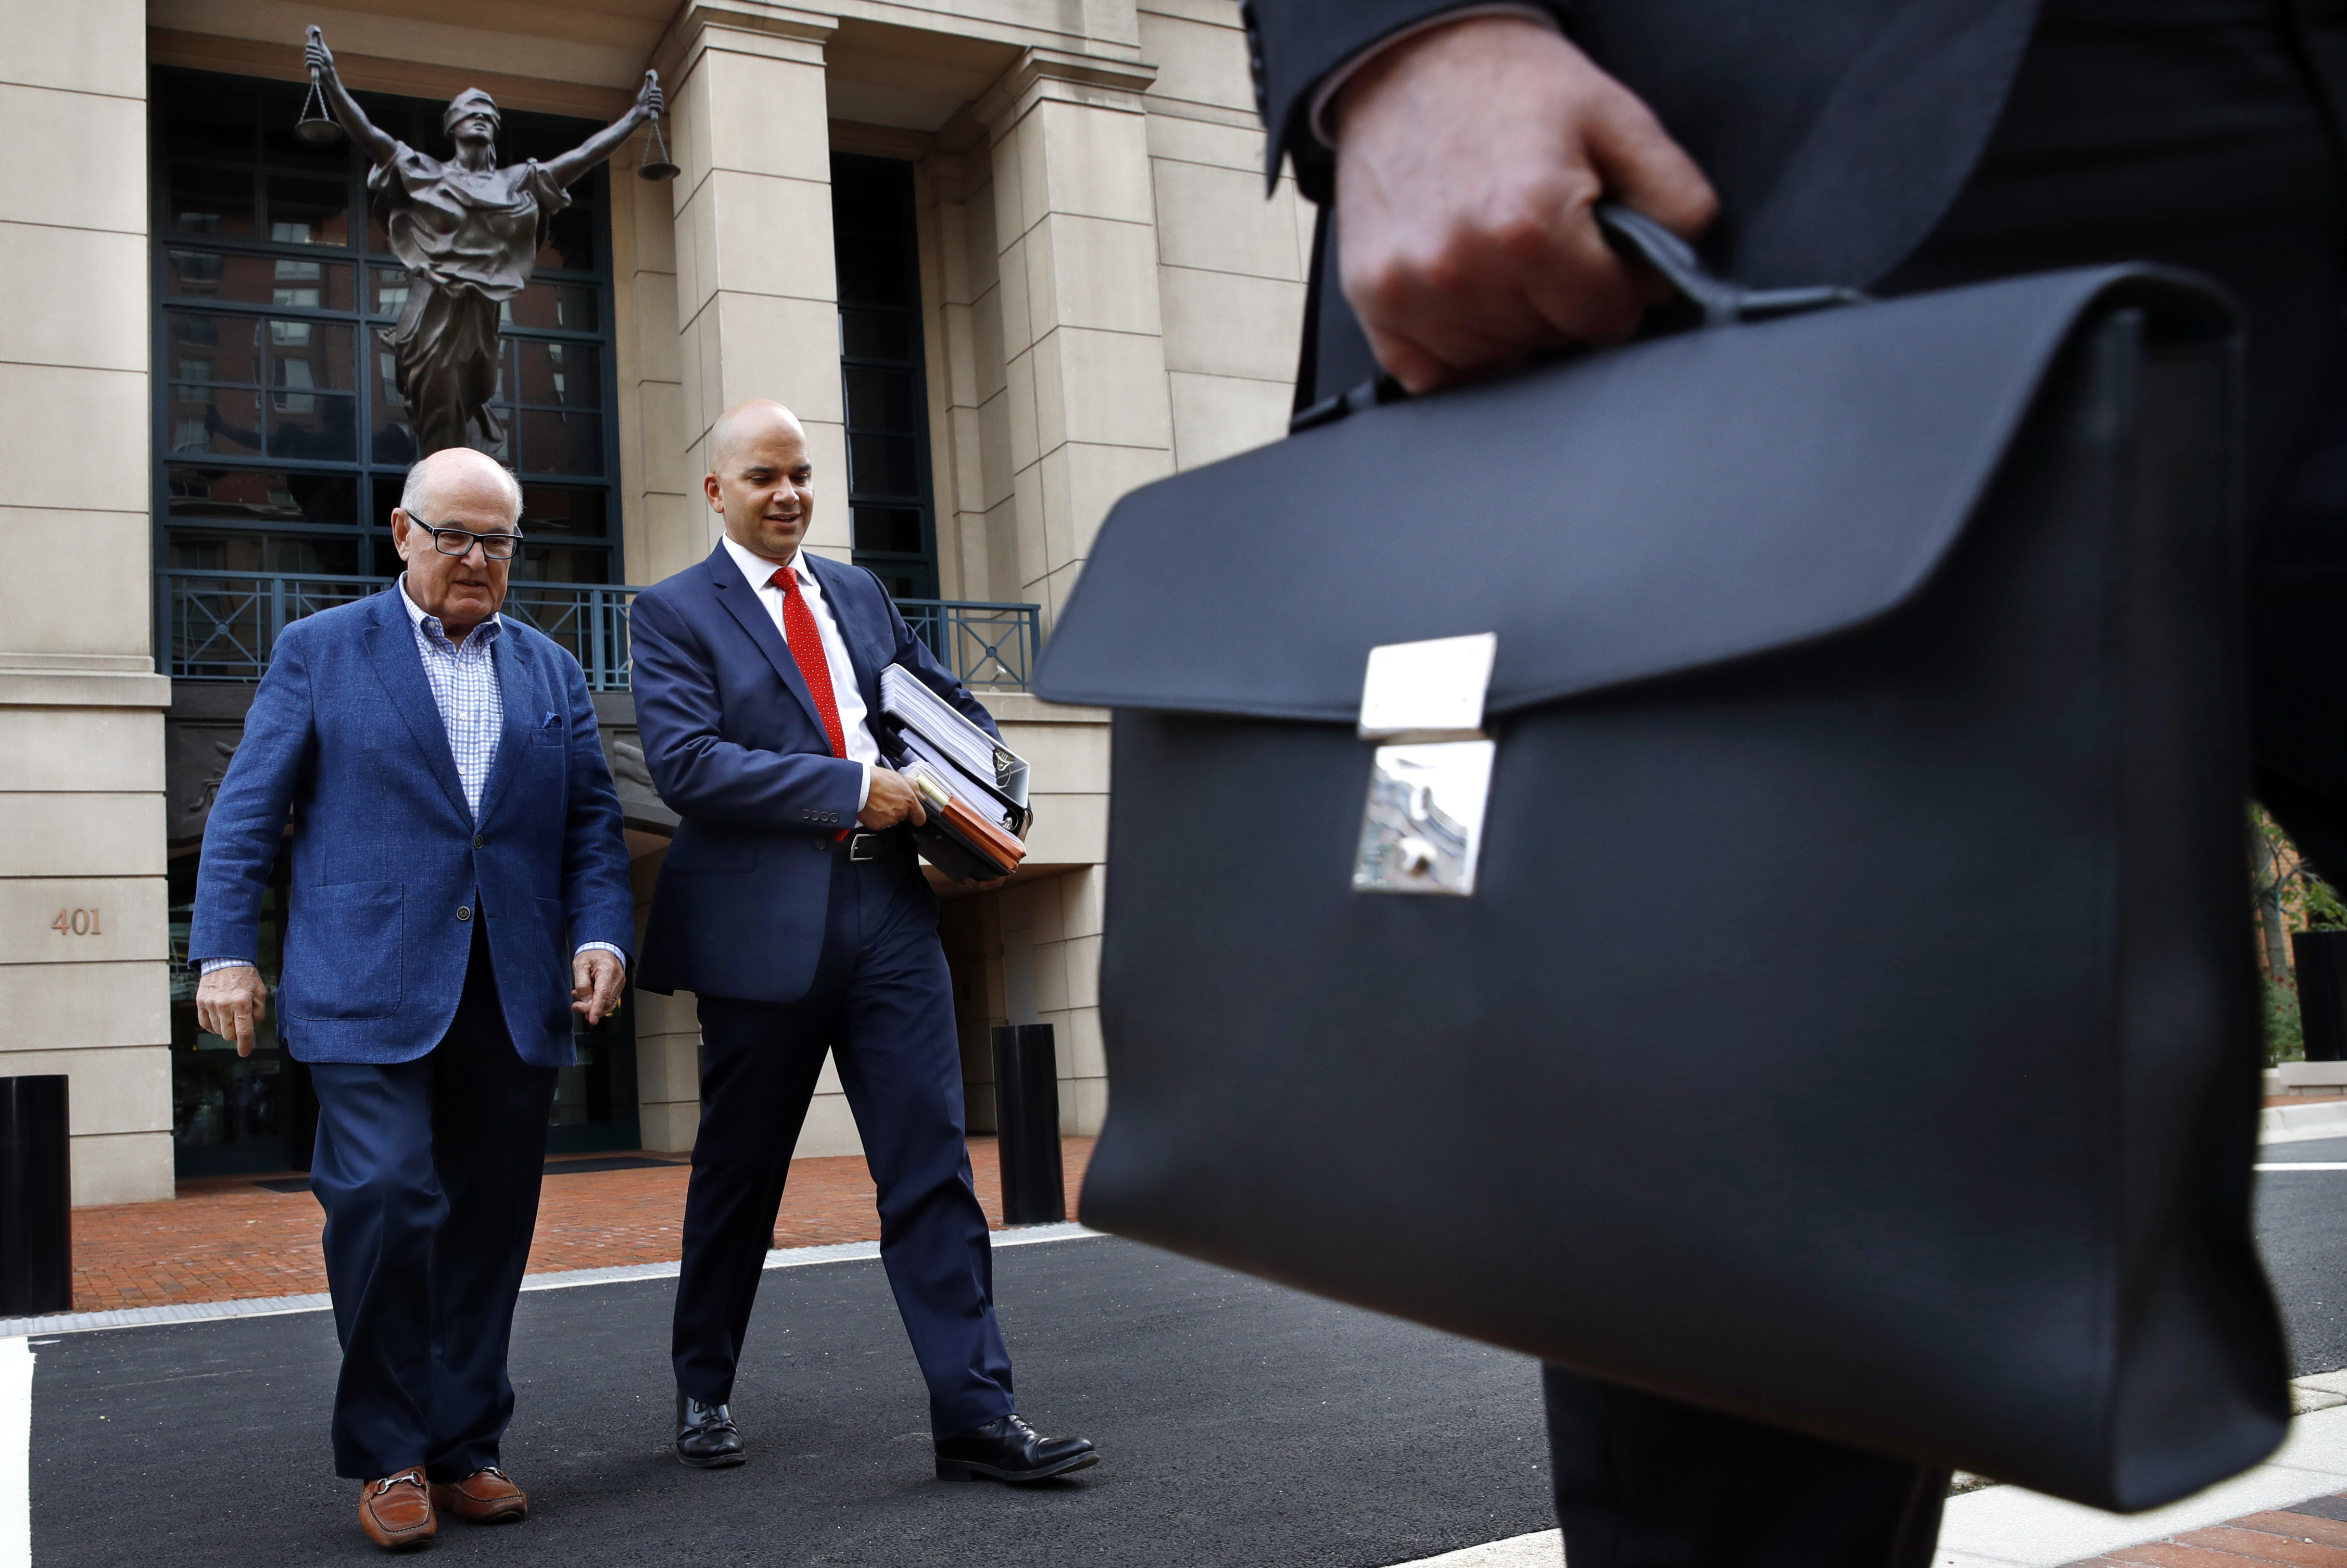 Jay Nanavati, second from left, one of the lawyers for former Donald Trump campaign chairman Paul Manafort, leaves federal court after attending the Manafort trial in Alexandria, Virginia,  Aug. 7, 2018.